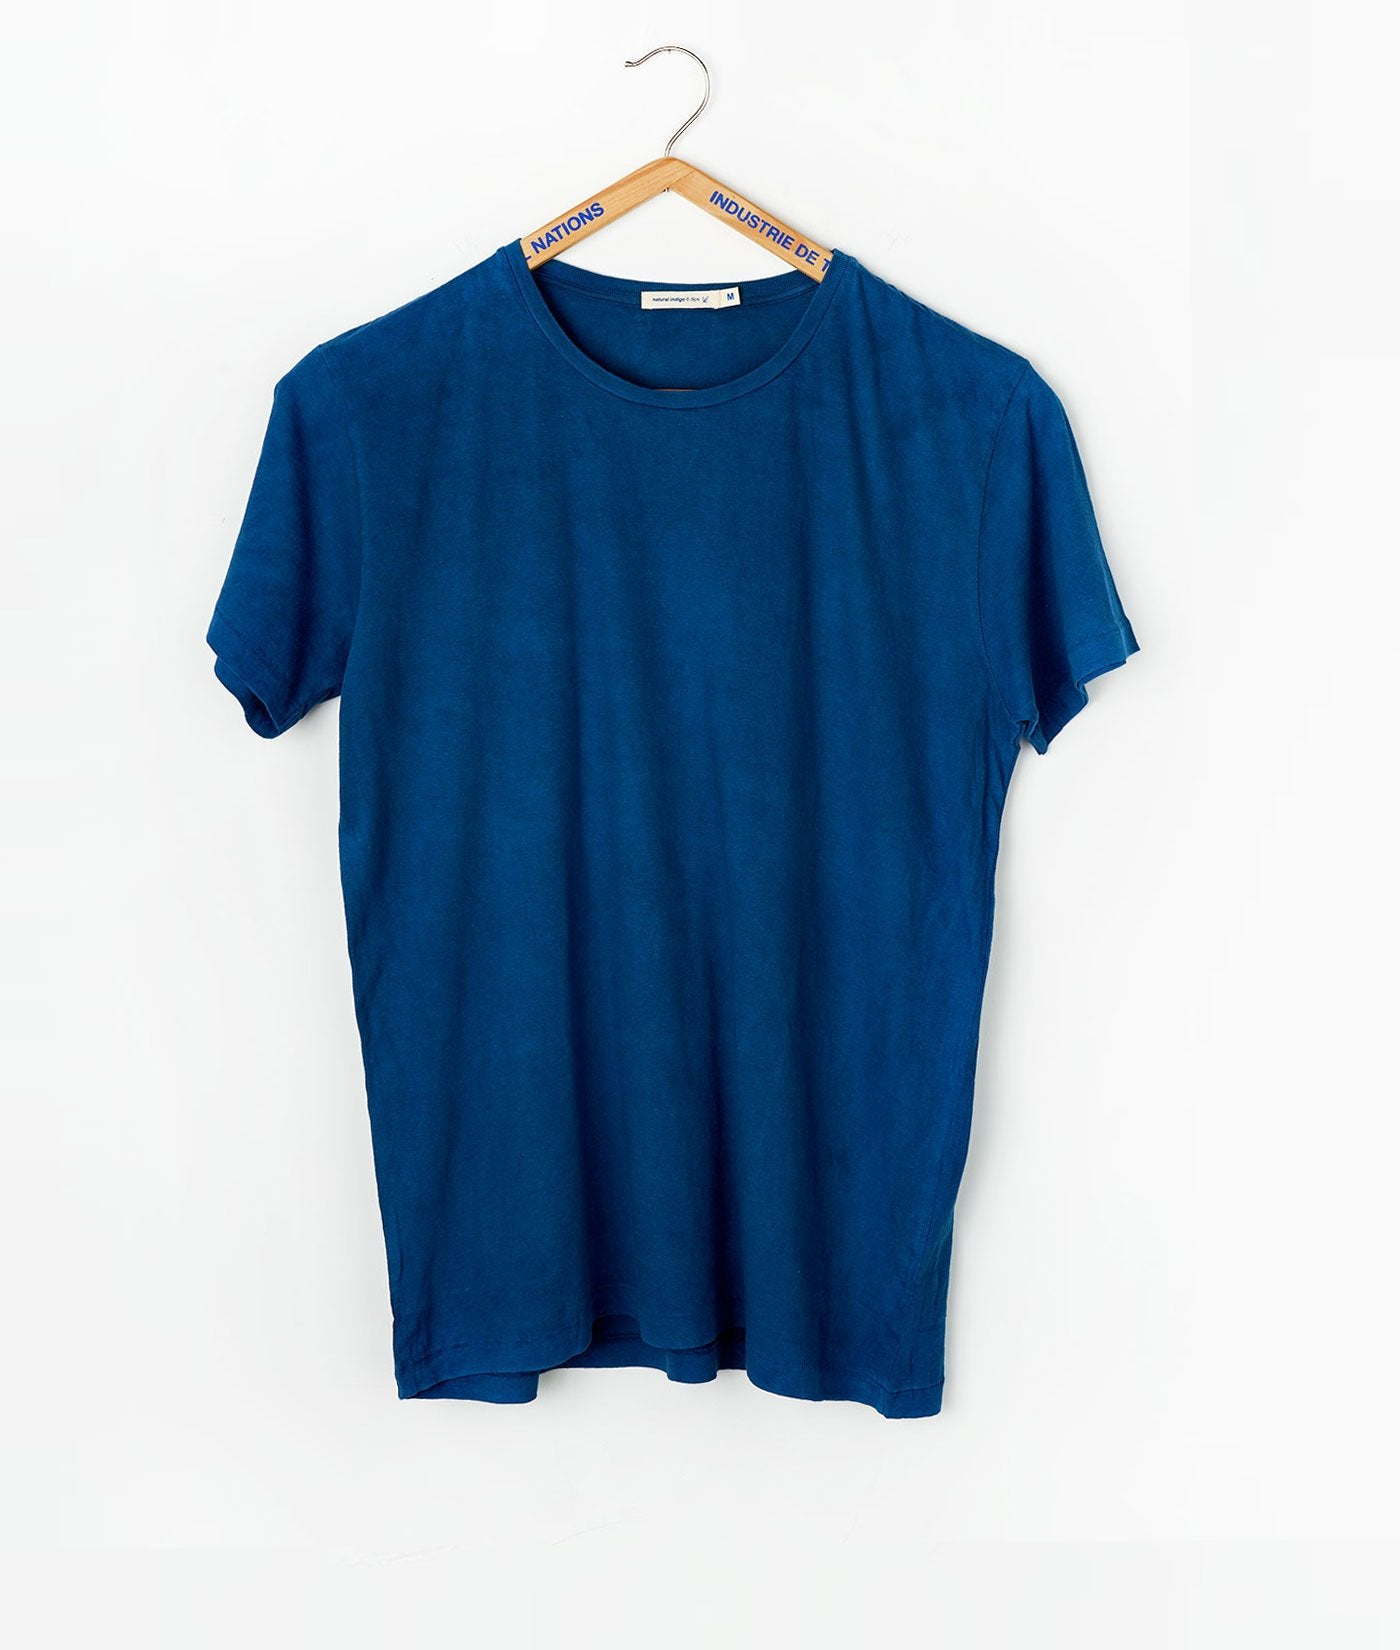 Clean Crewneck T-shirt